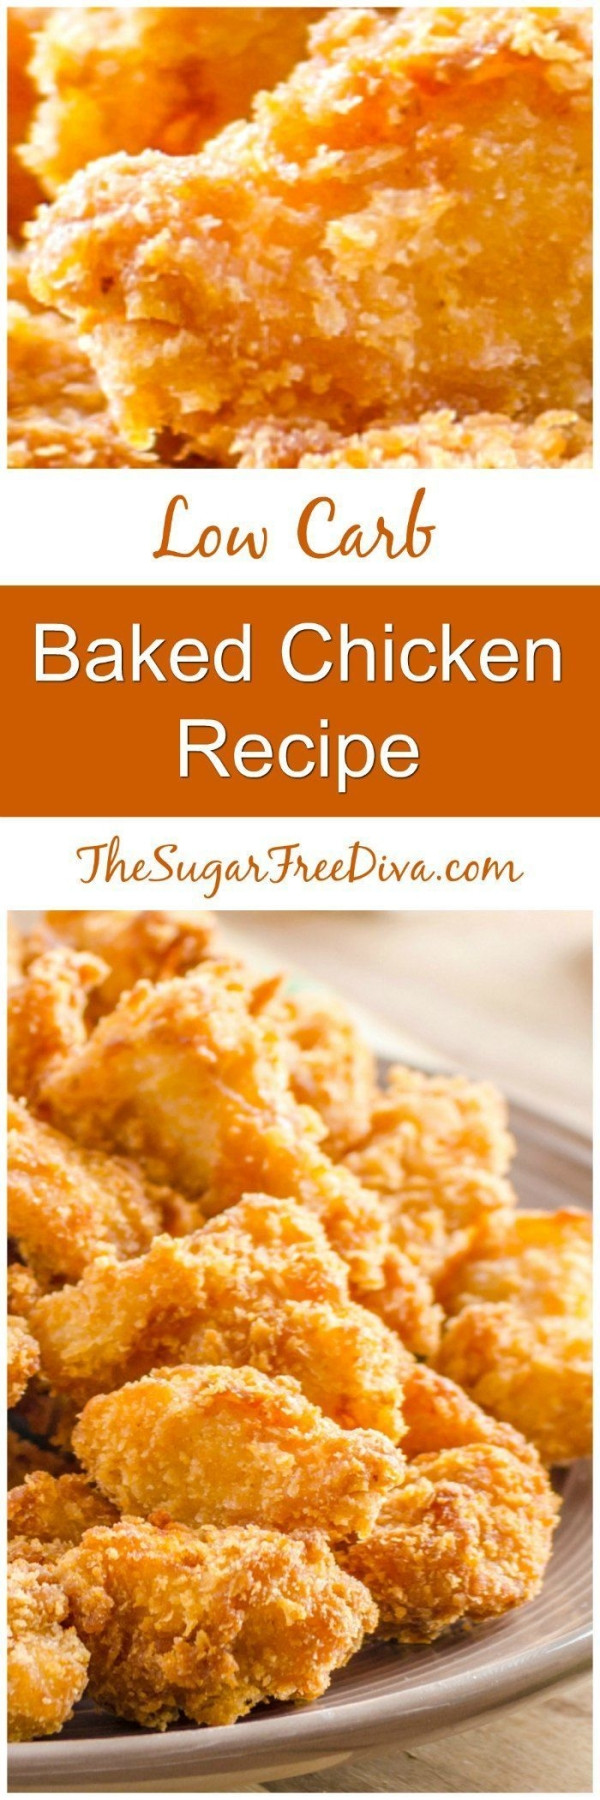 Keto Baked Chicken  Keto Baked Chicken Recipe this looks so delicious and it